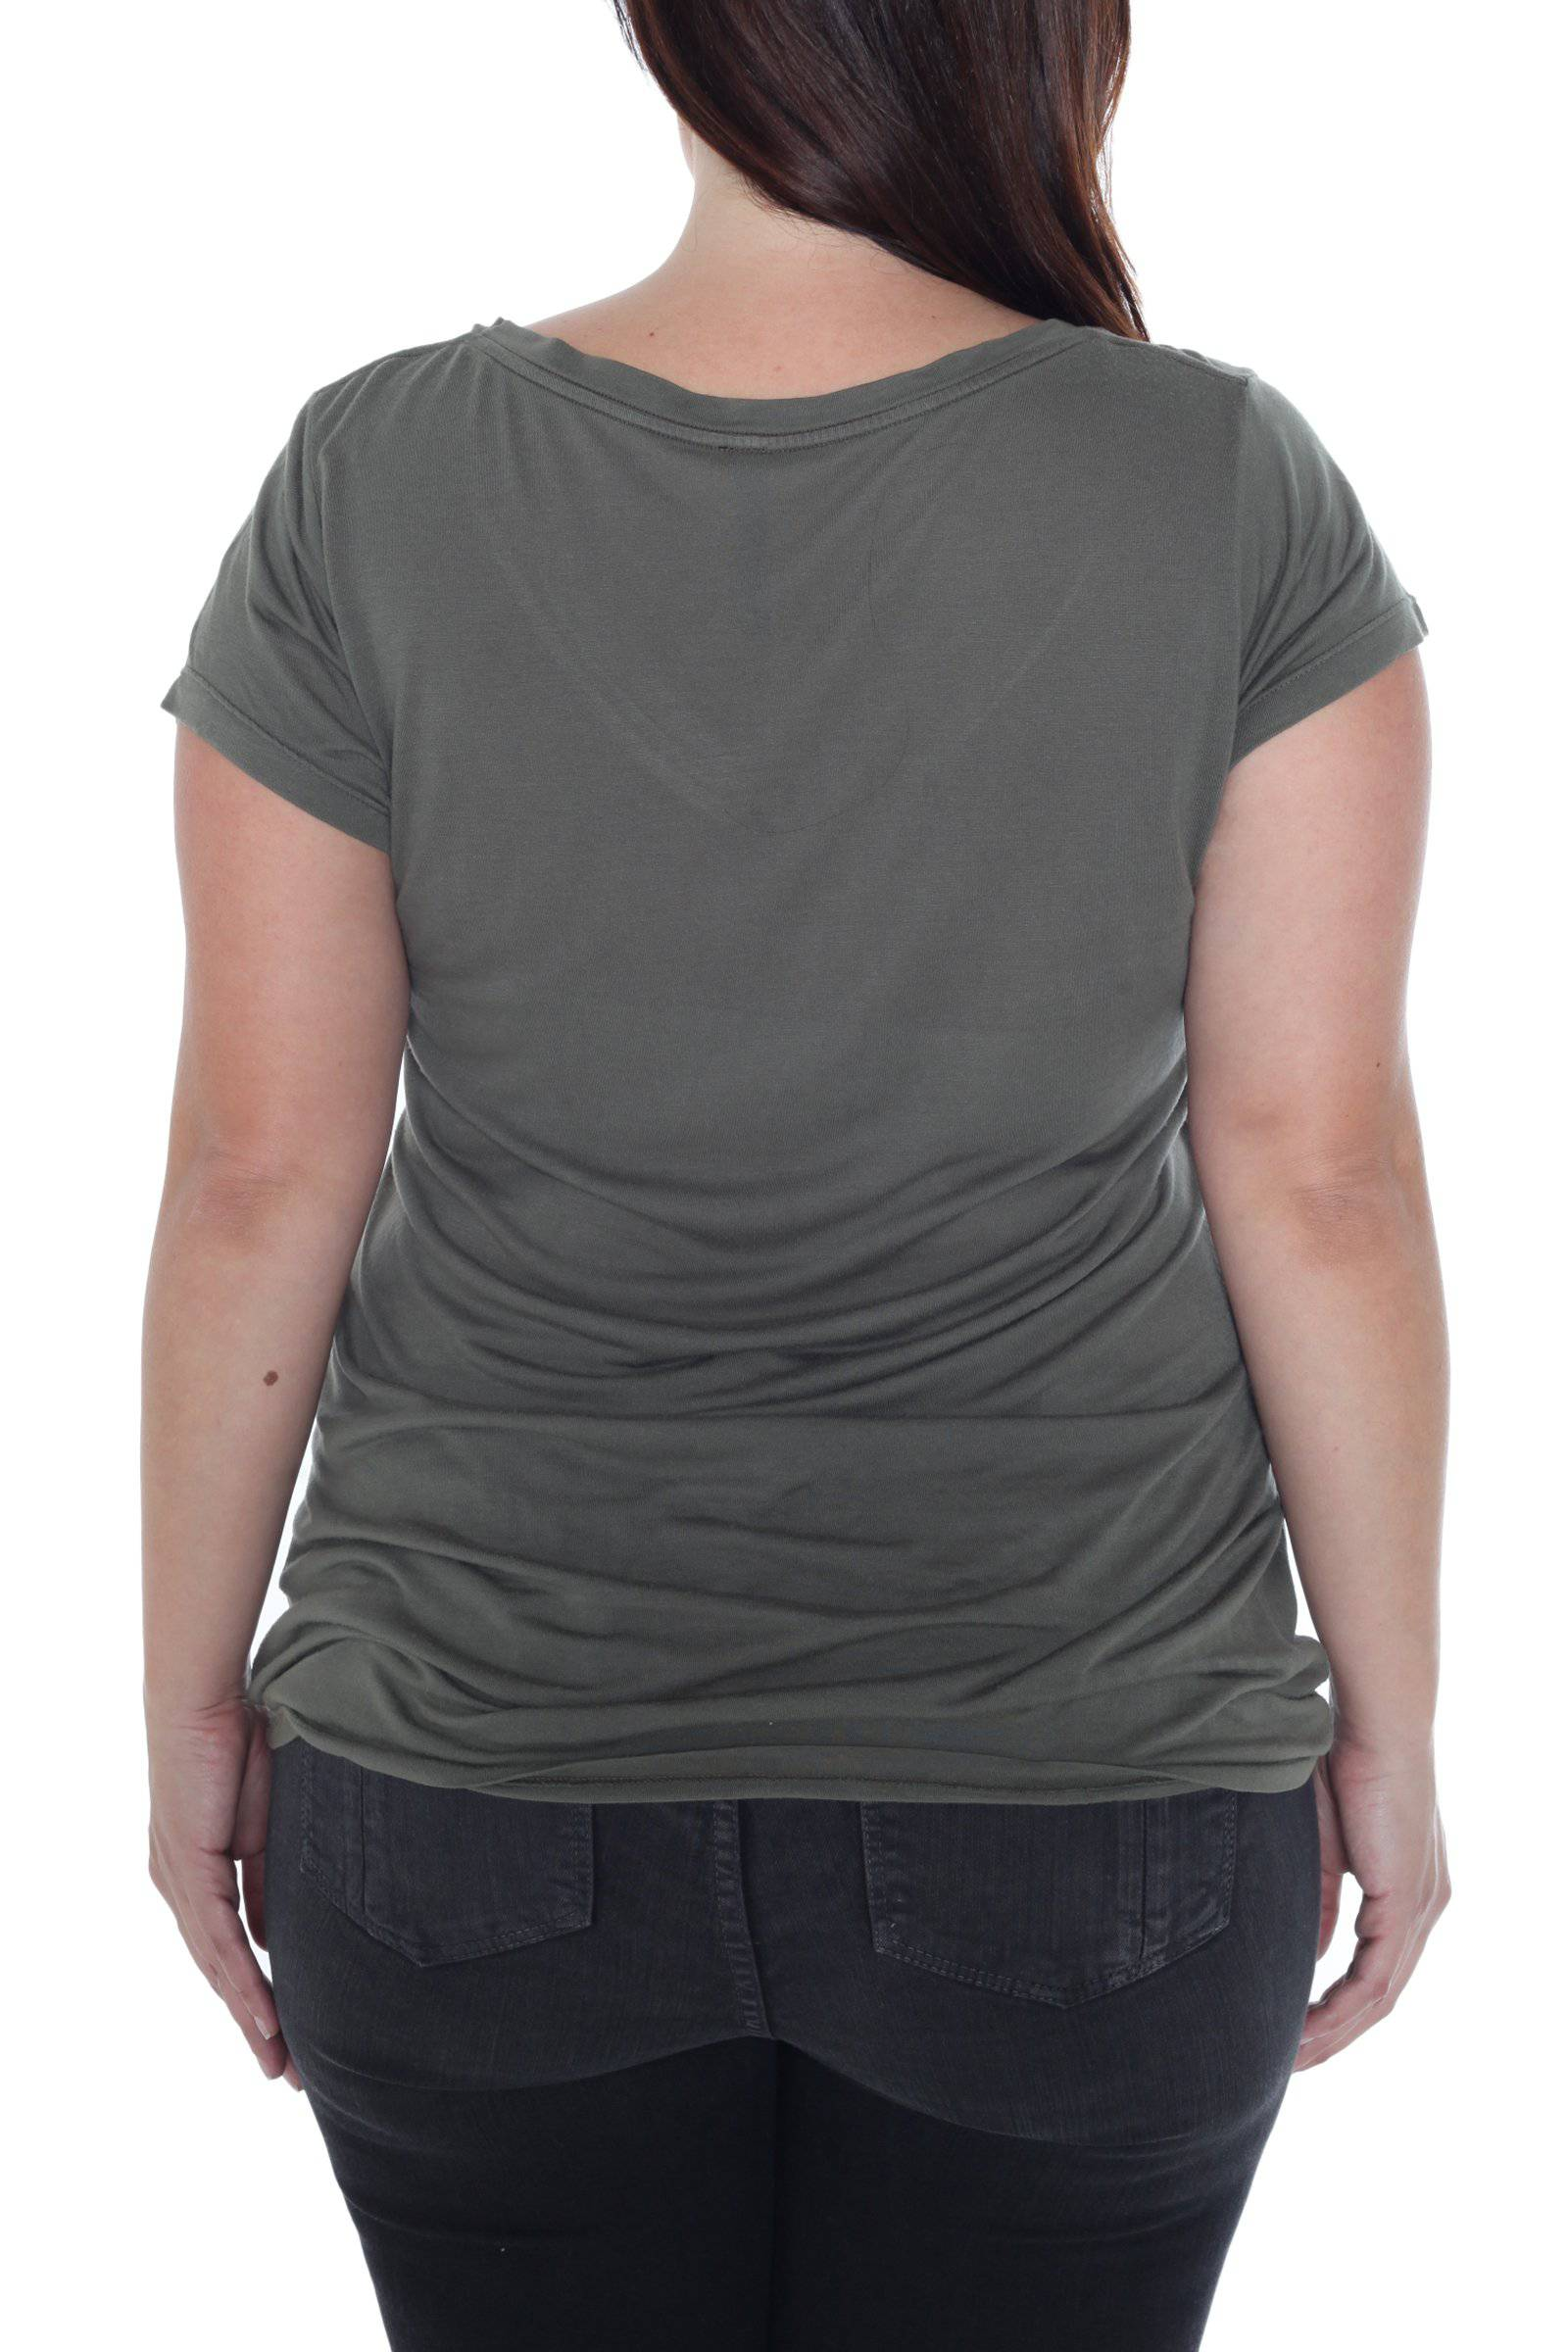 Scoop Neck Tee - SEXY